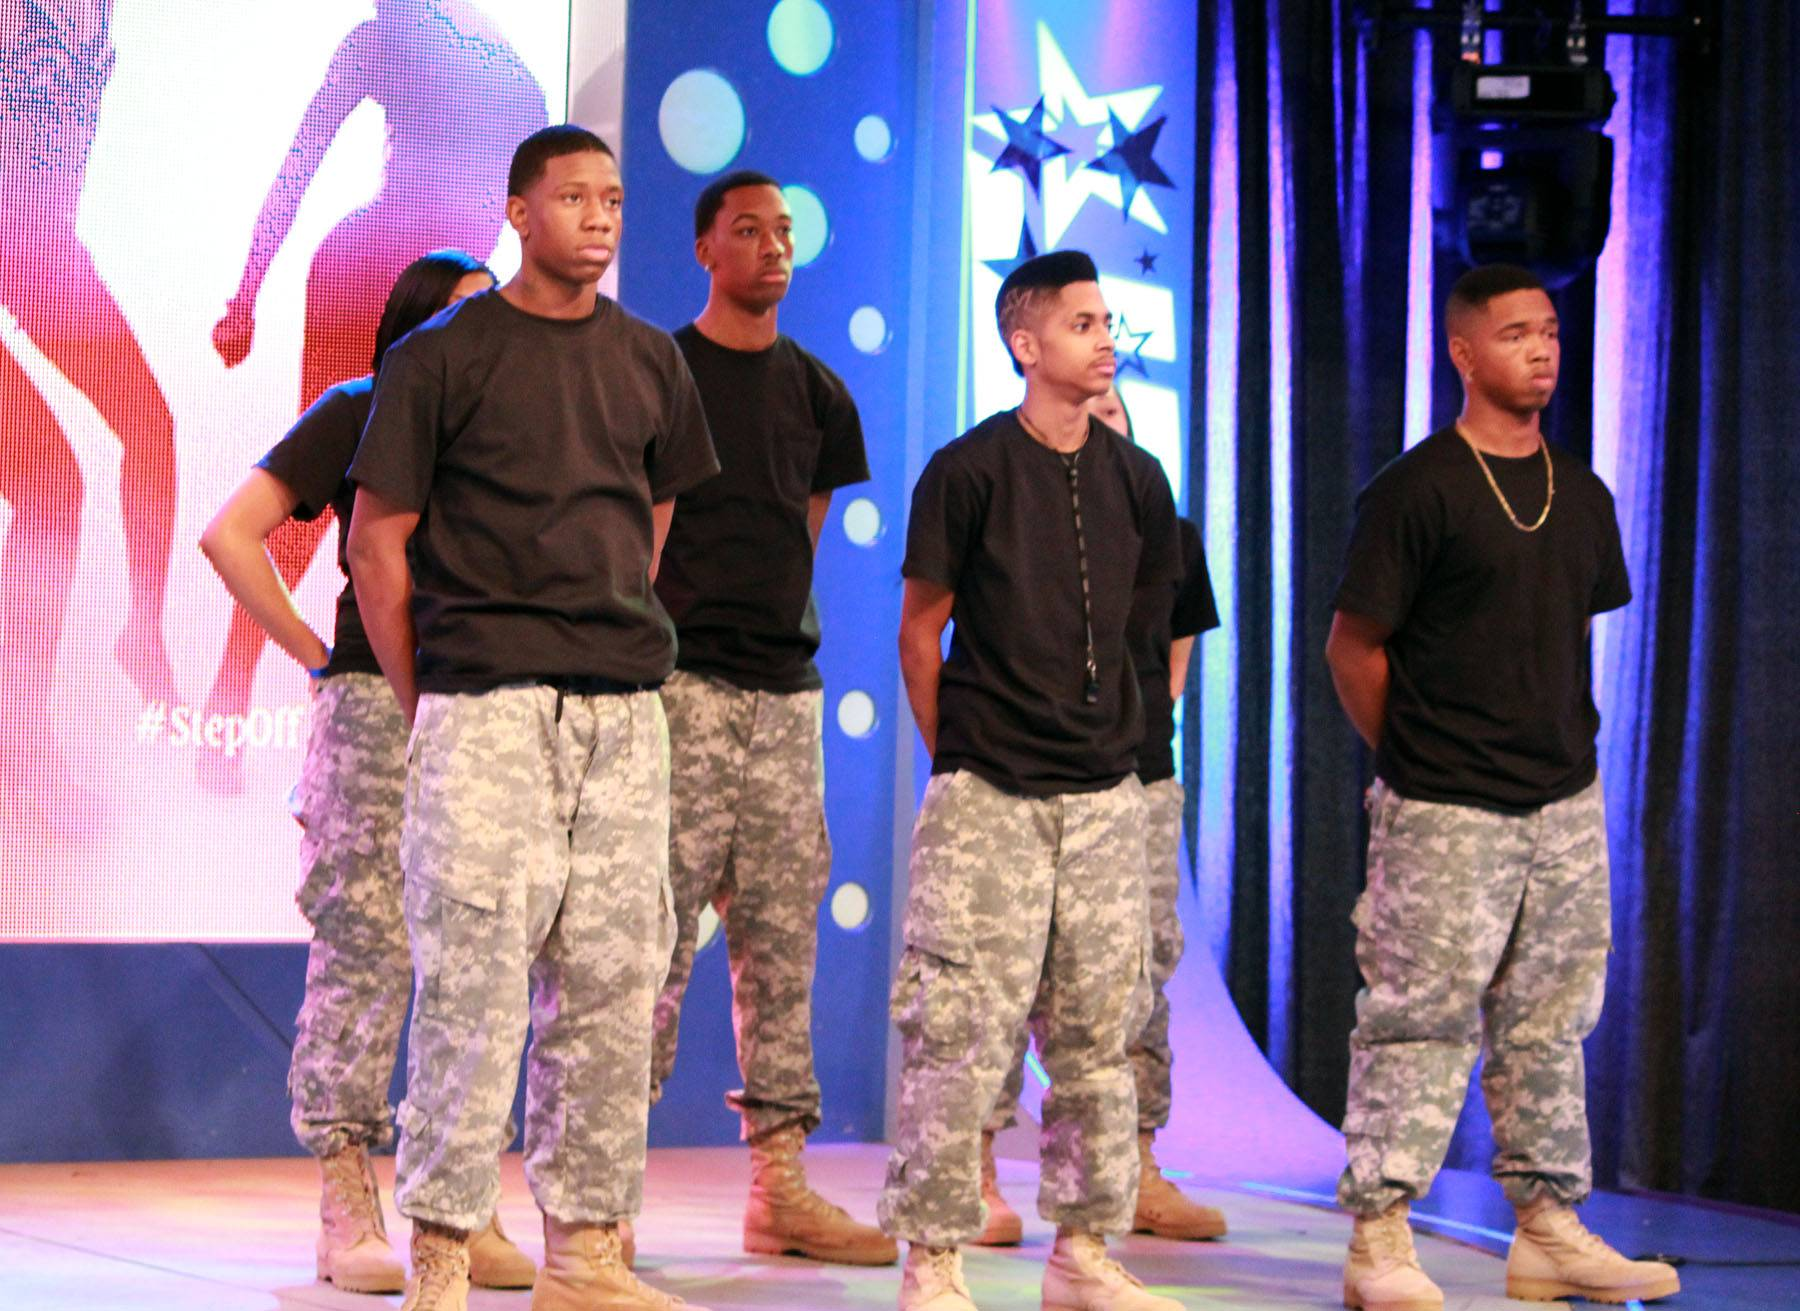 We're Ready - Wild Out Wednesday performers on set at 106 & Park. (photo by: Slim)